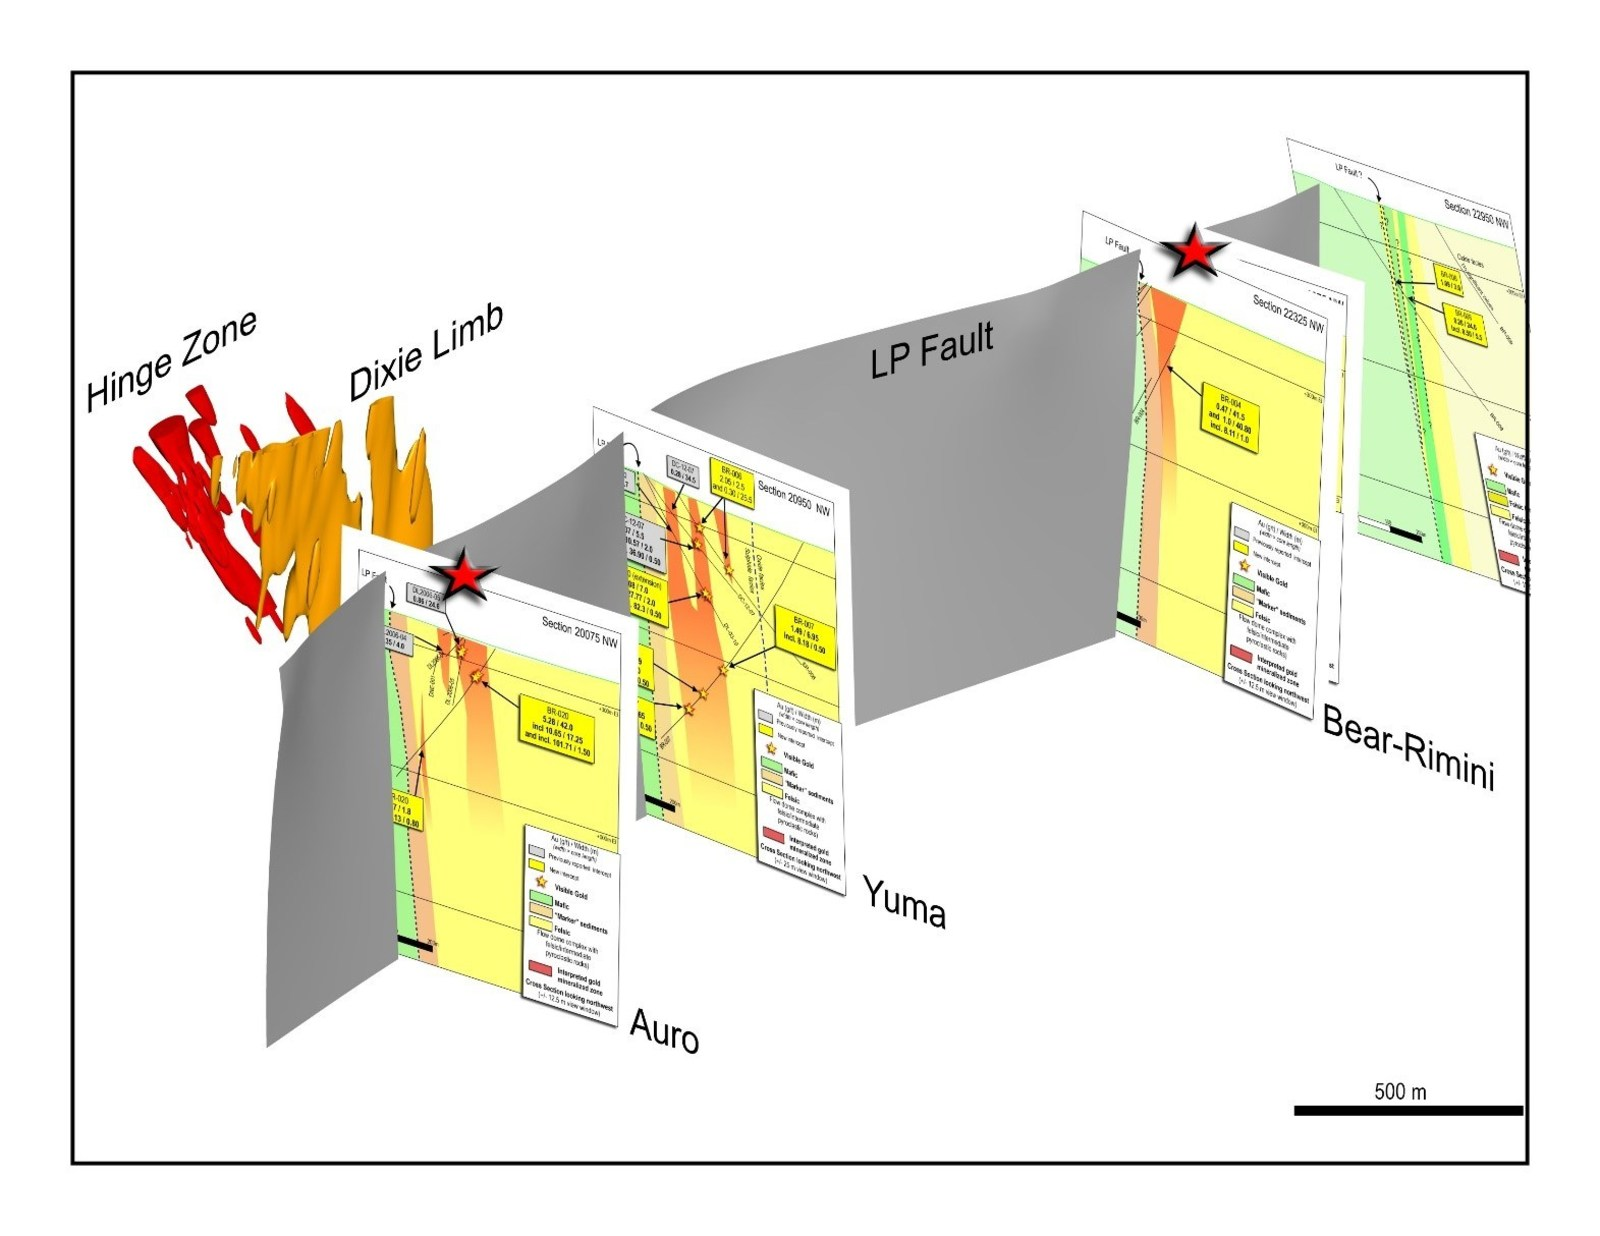 Figure 2: 3D view to west of approximately 3.5 kilometres of the LP Fault deformation zone, to approximately 750 metres depth.  The locations of the cross sections provided in this release are shown in true scale and spatial orientation.  The Dixie Limb and Hinge Zones are also shown.